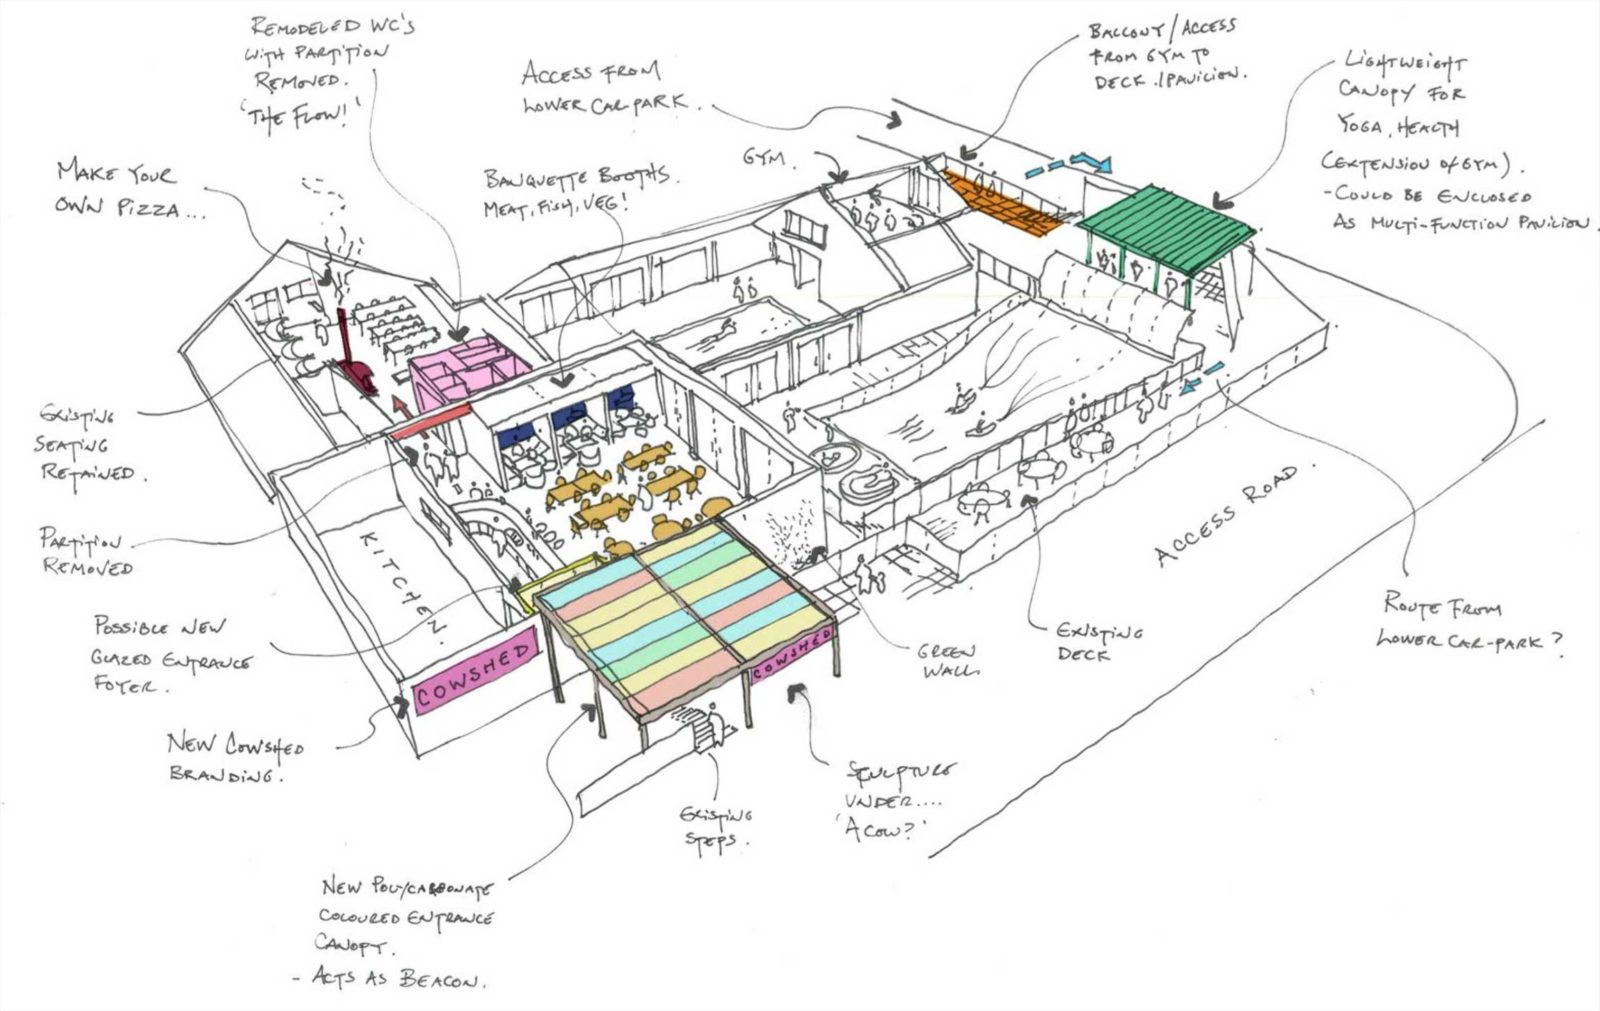 Retallick Proposals – Rud Sawers Architects, Devon